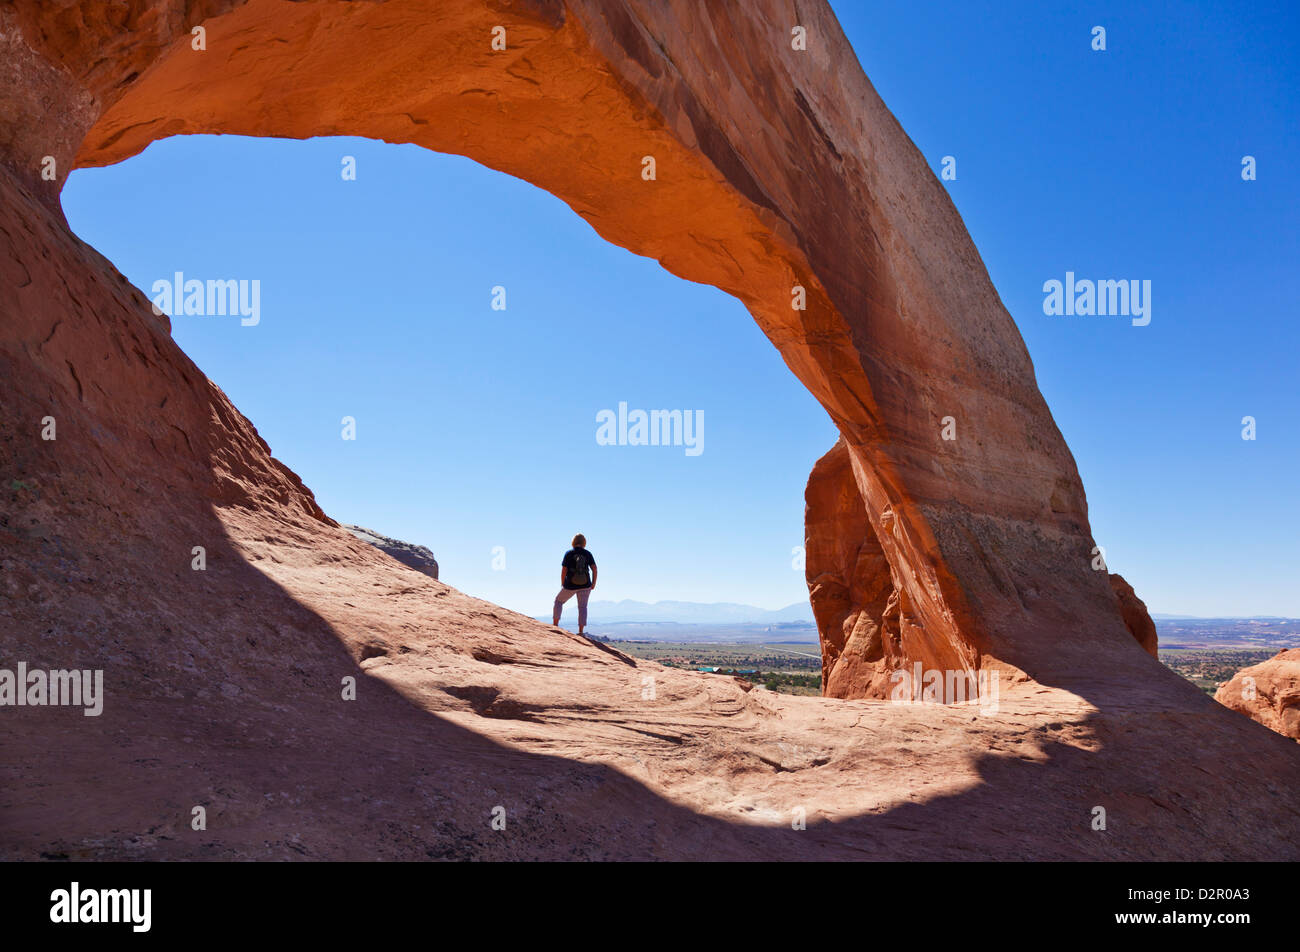 Lone tourist hiker at Wilson Arch, near Moab, Utah, United States of America, North America - Stock Image